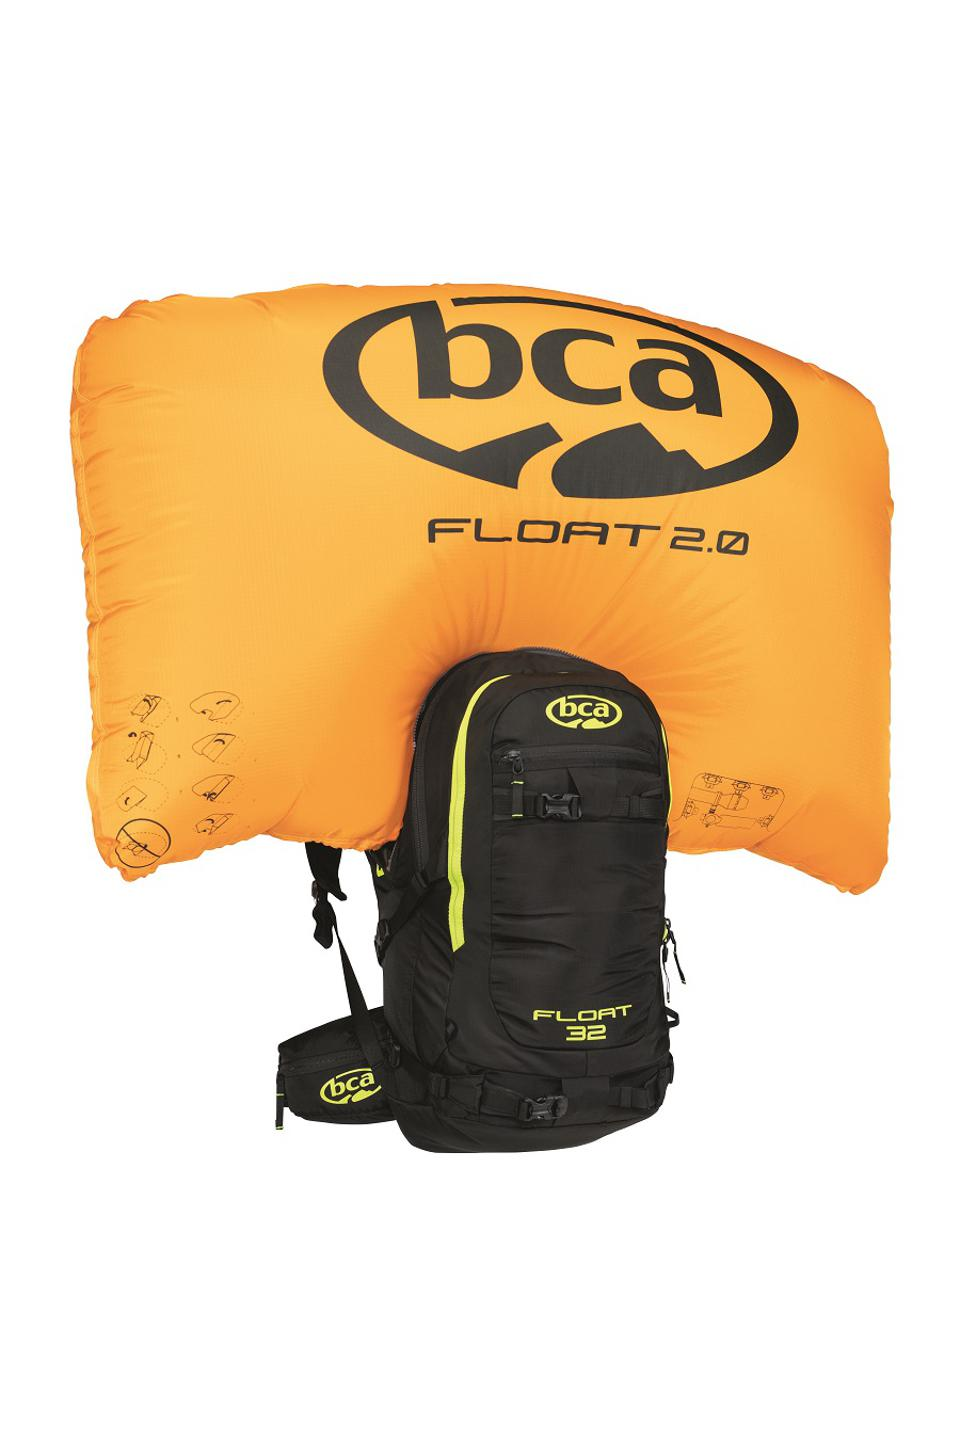 Avalanche airbag pack